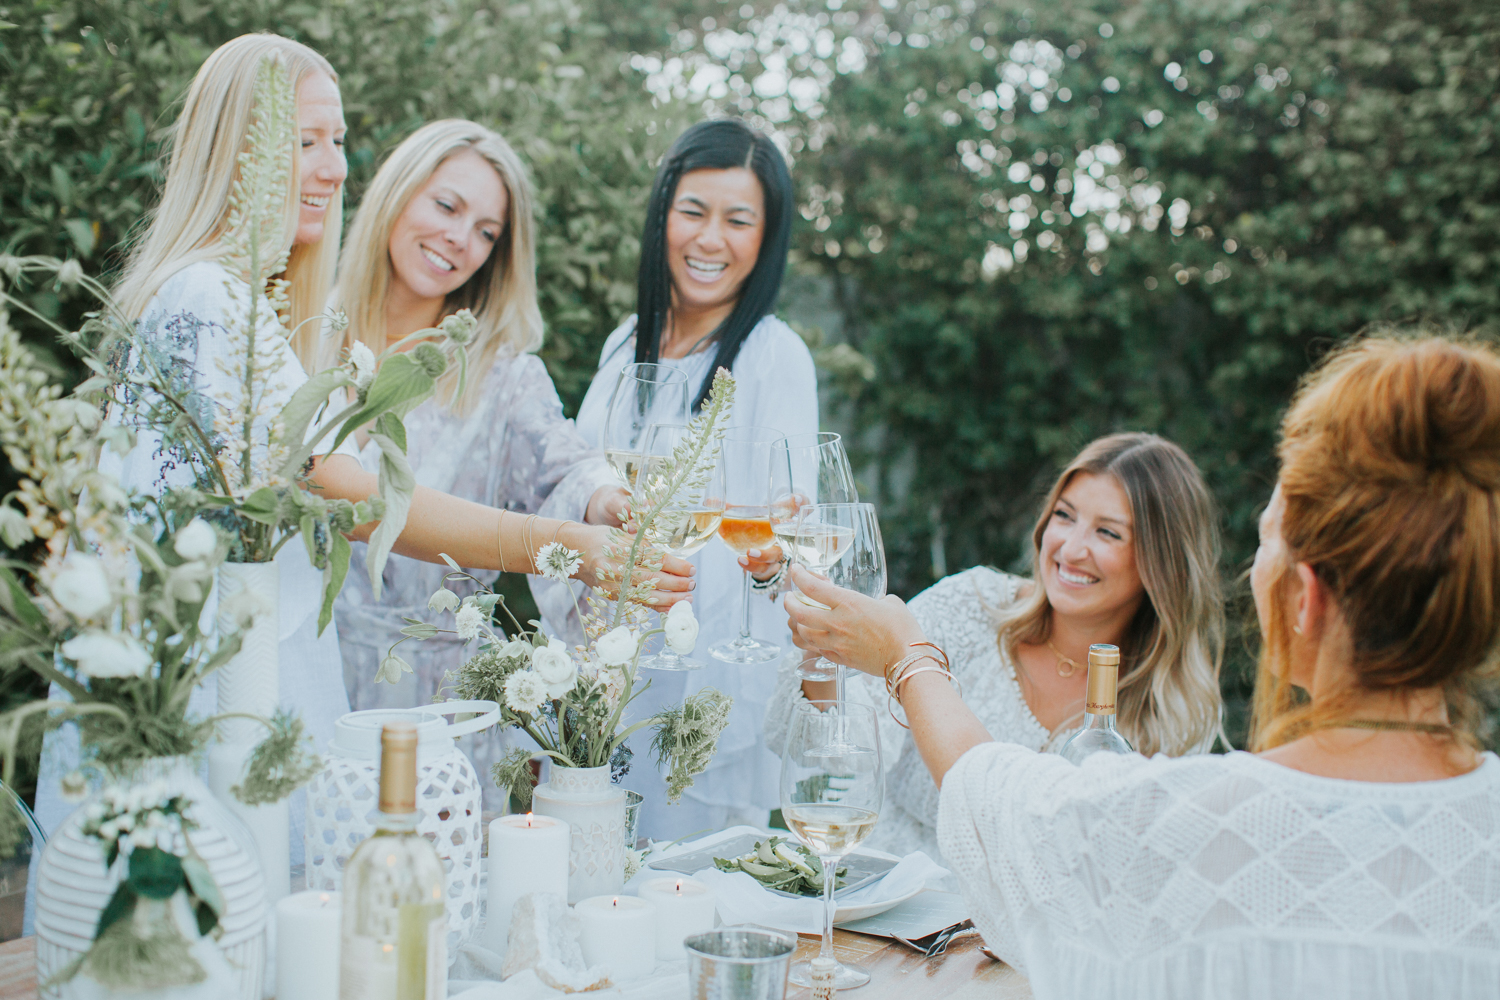 get your girls together for an outdoor get together   A Fabulous Fete